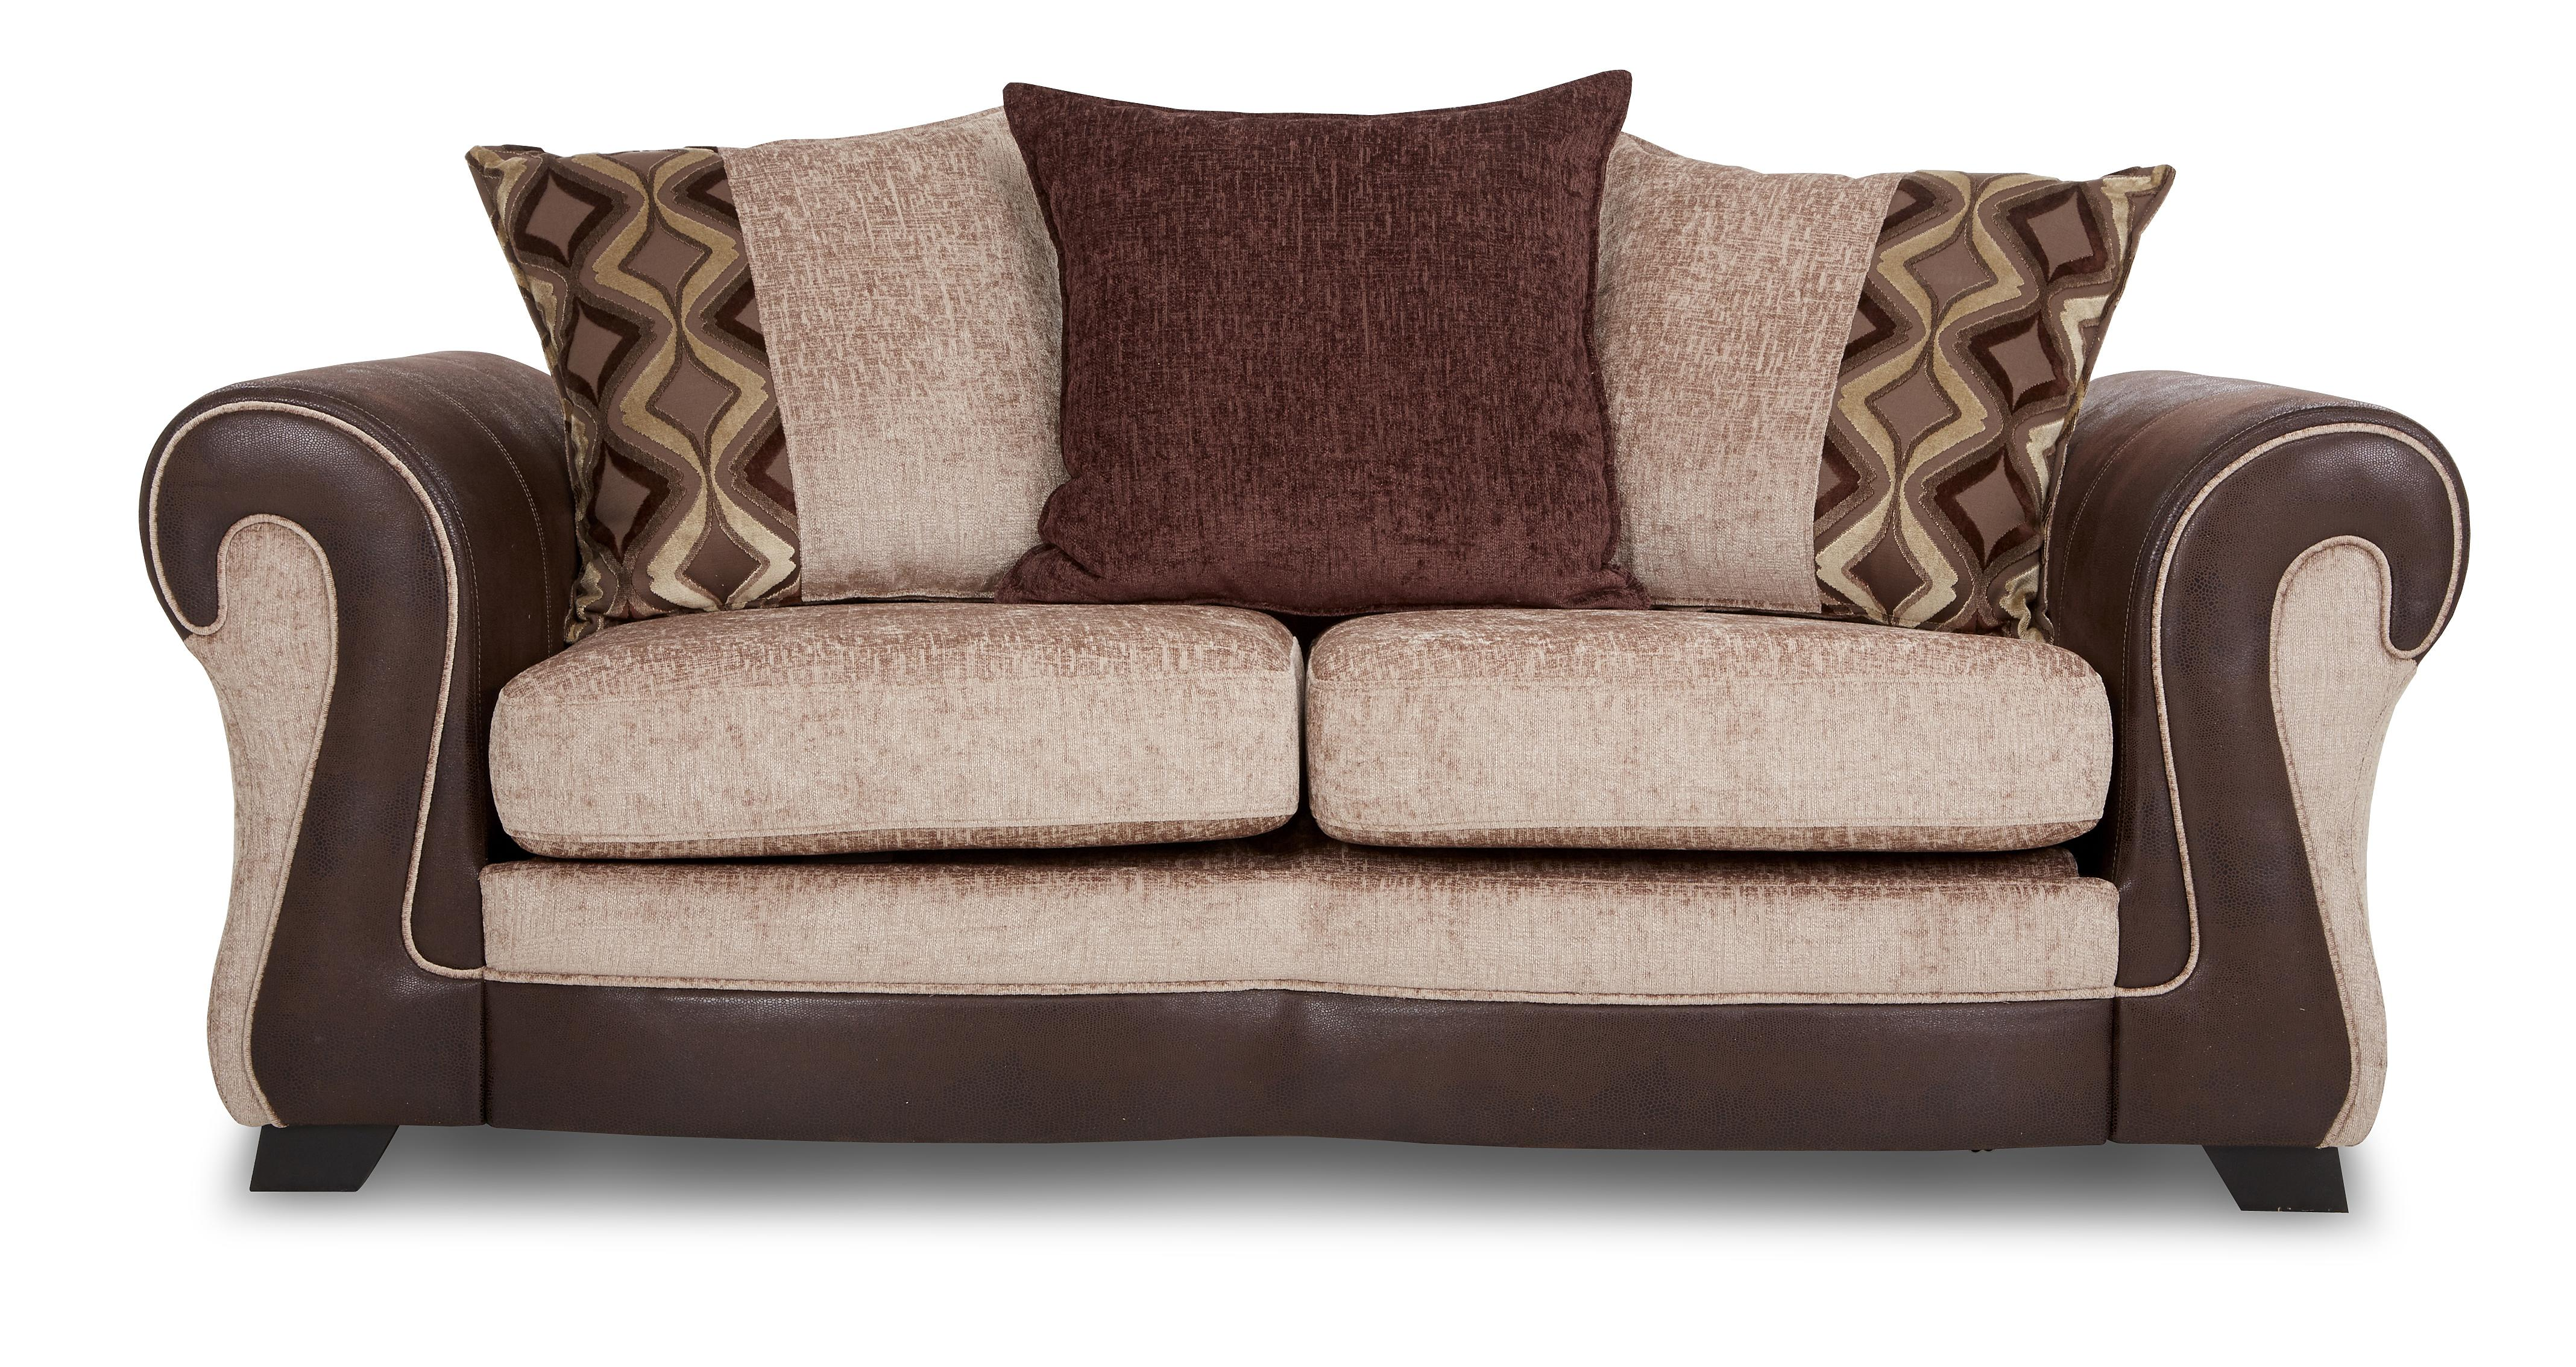 extra large sofa cushion covers difference between settee couch cushions brokeasshome